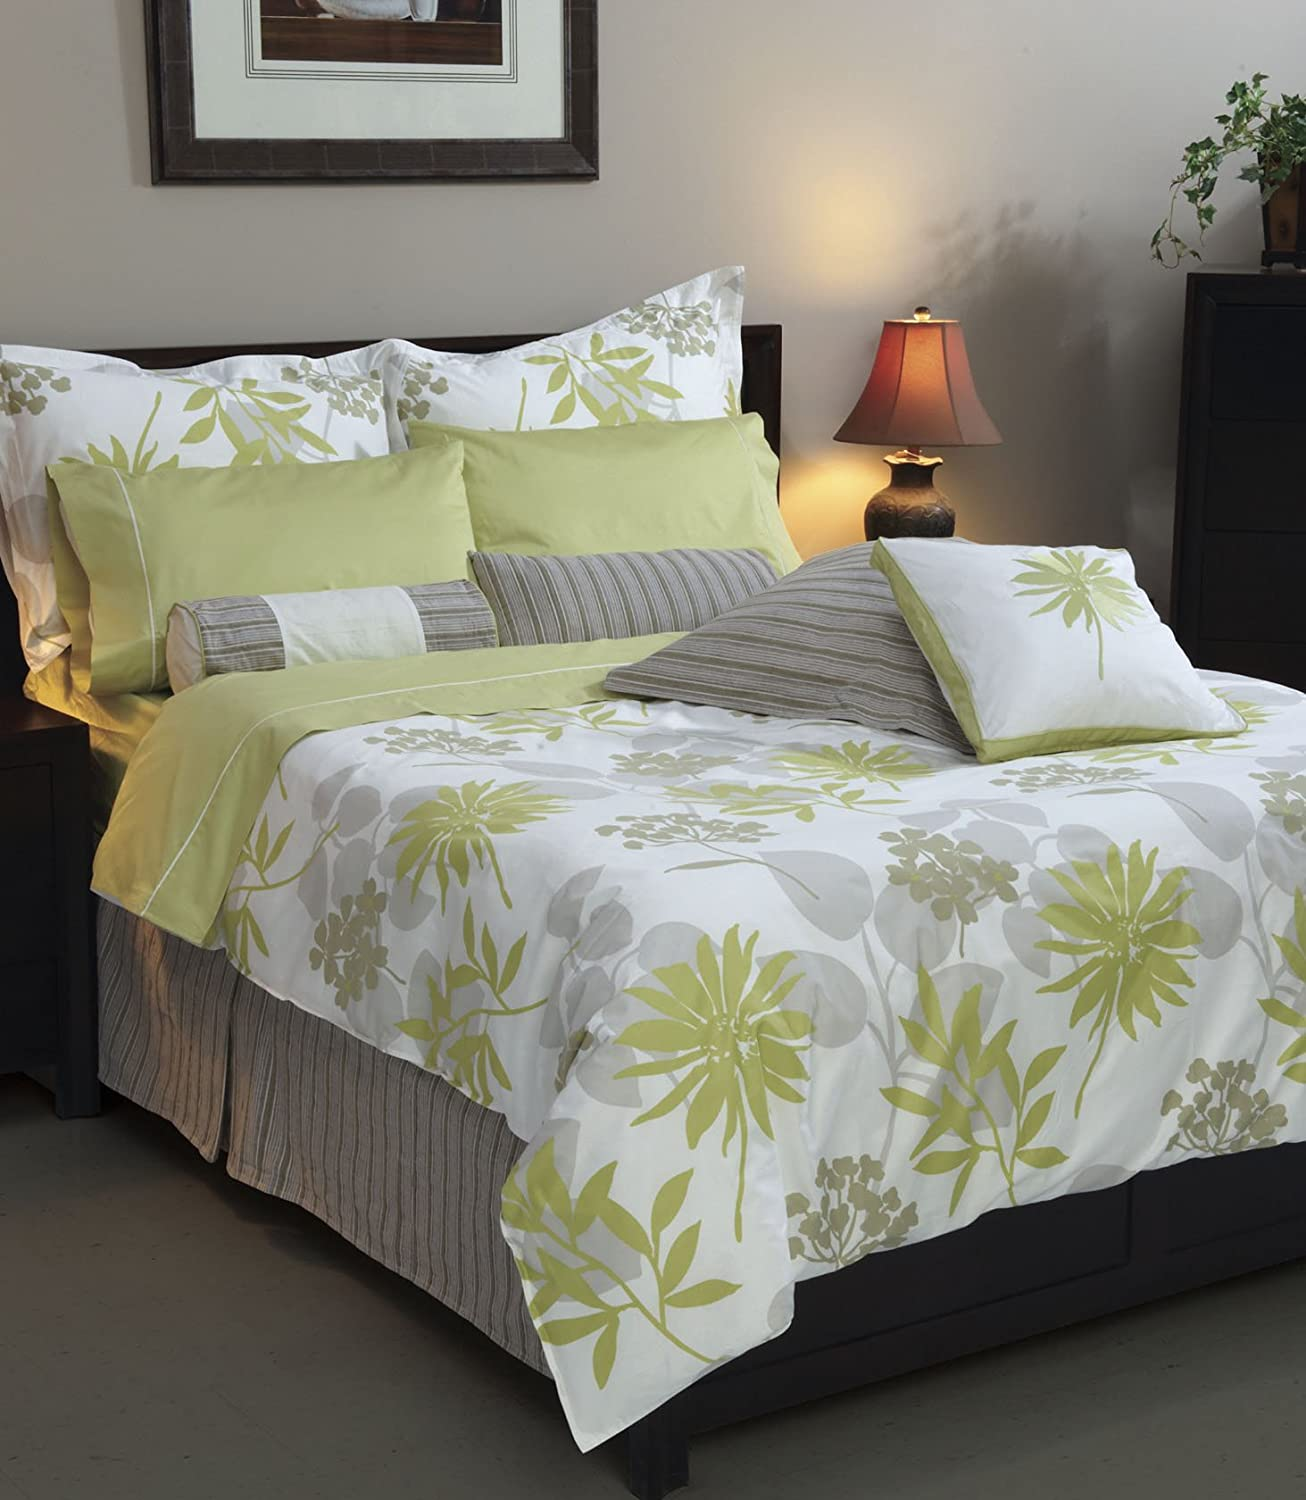 duvet linen yorkshire discount on bds banbury floral green set king covers cover buy